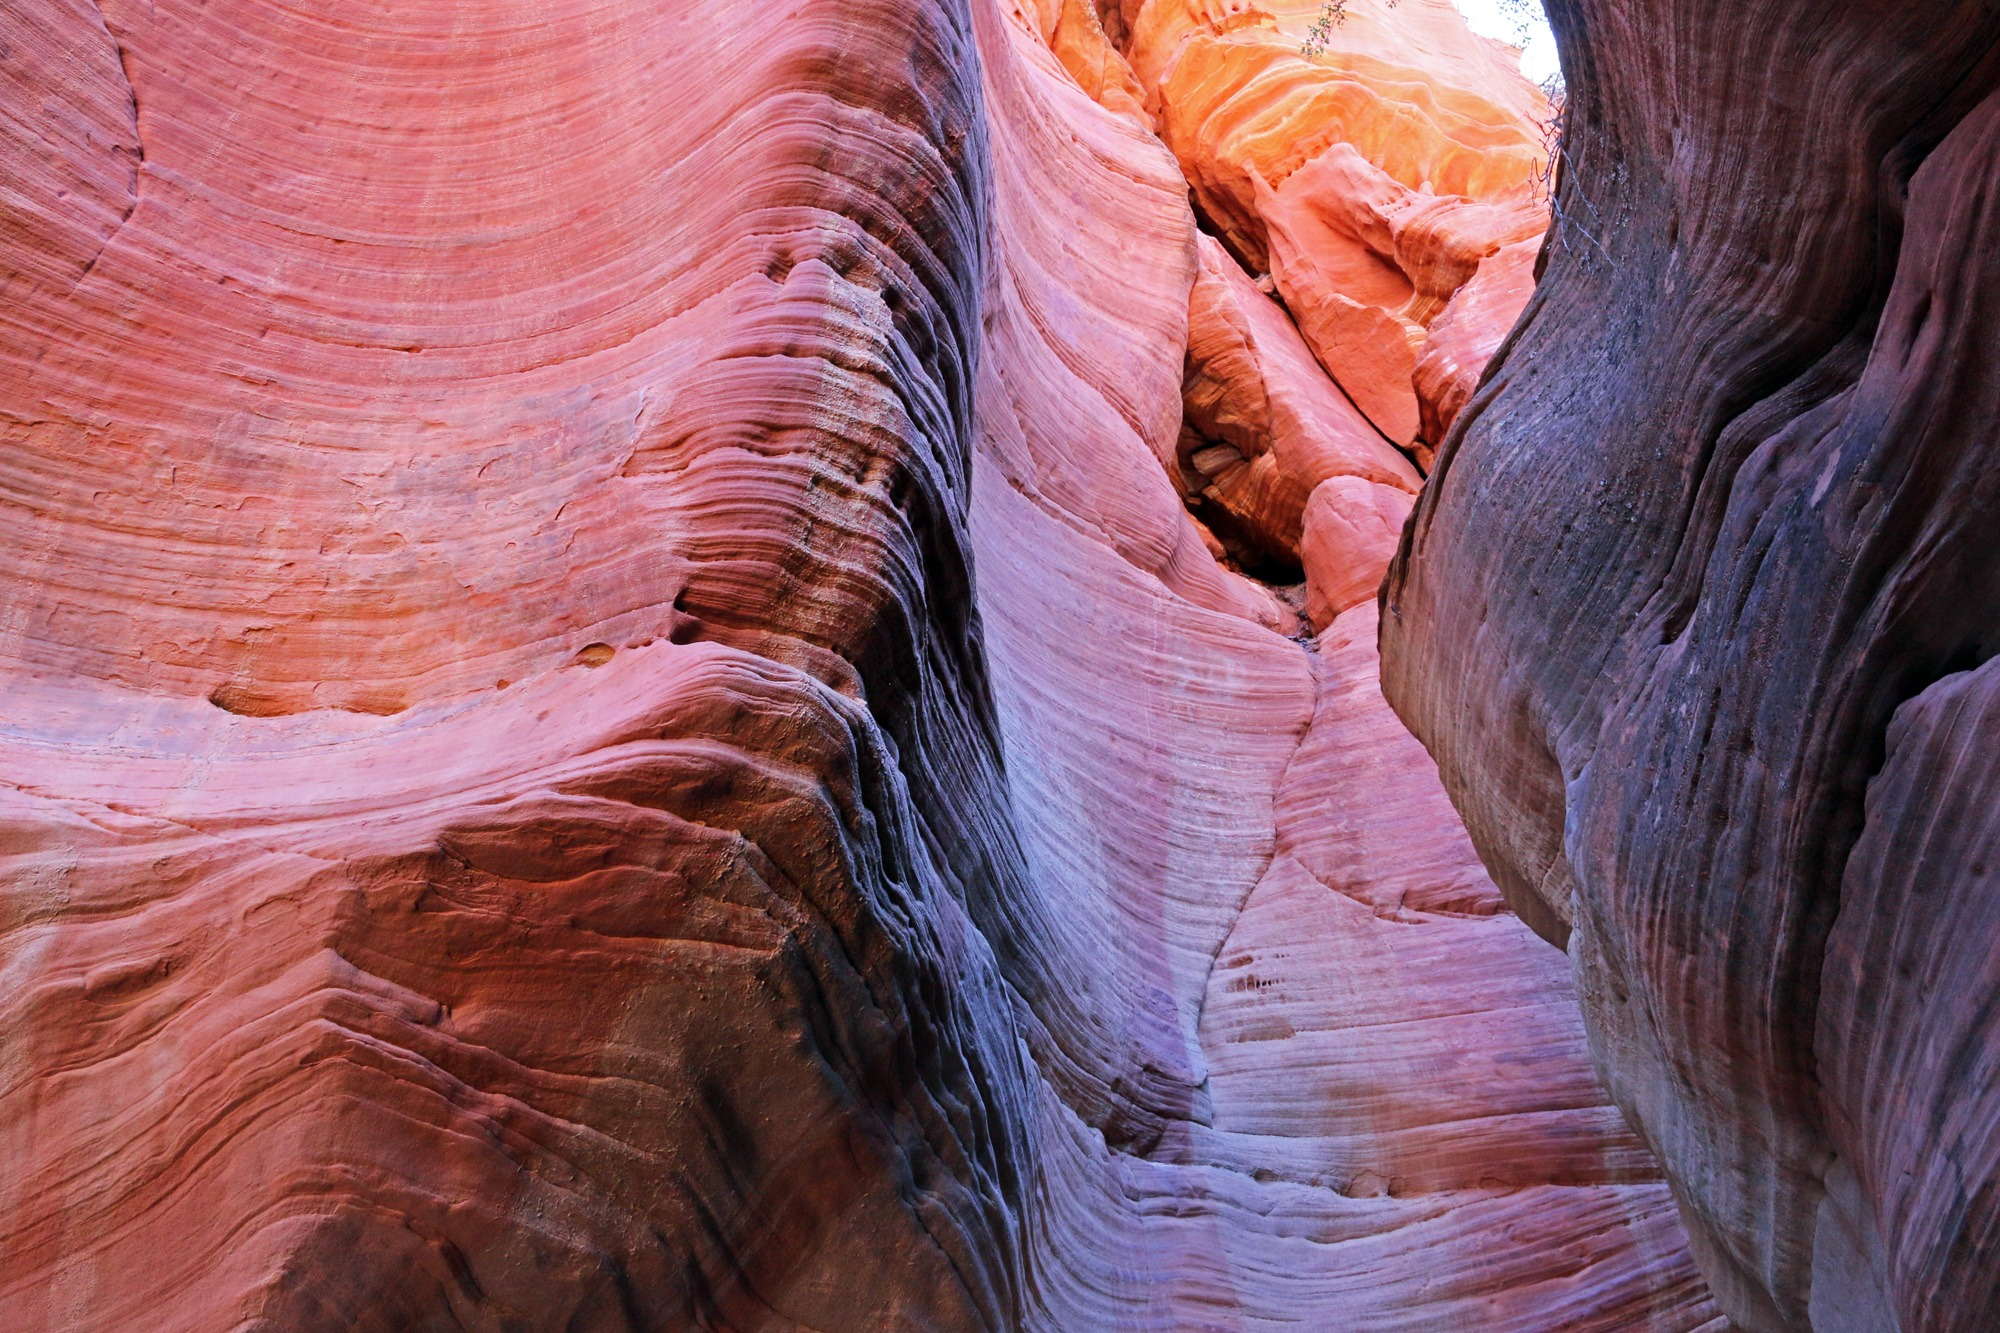 Peekaboo Slot Canyon at sunset